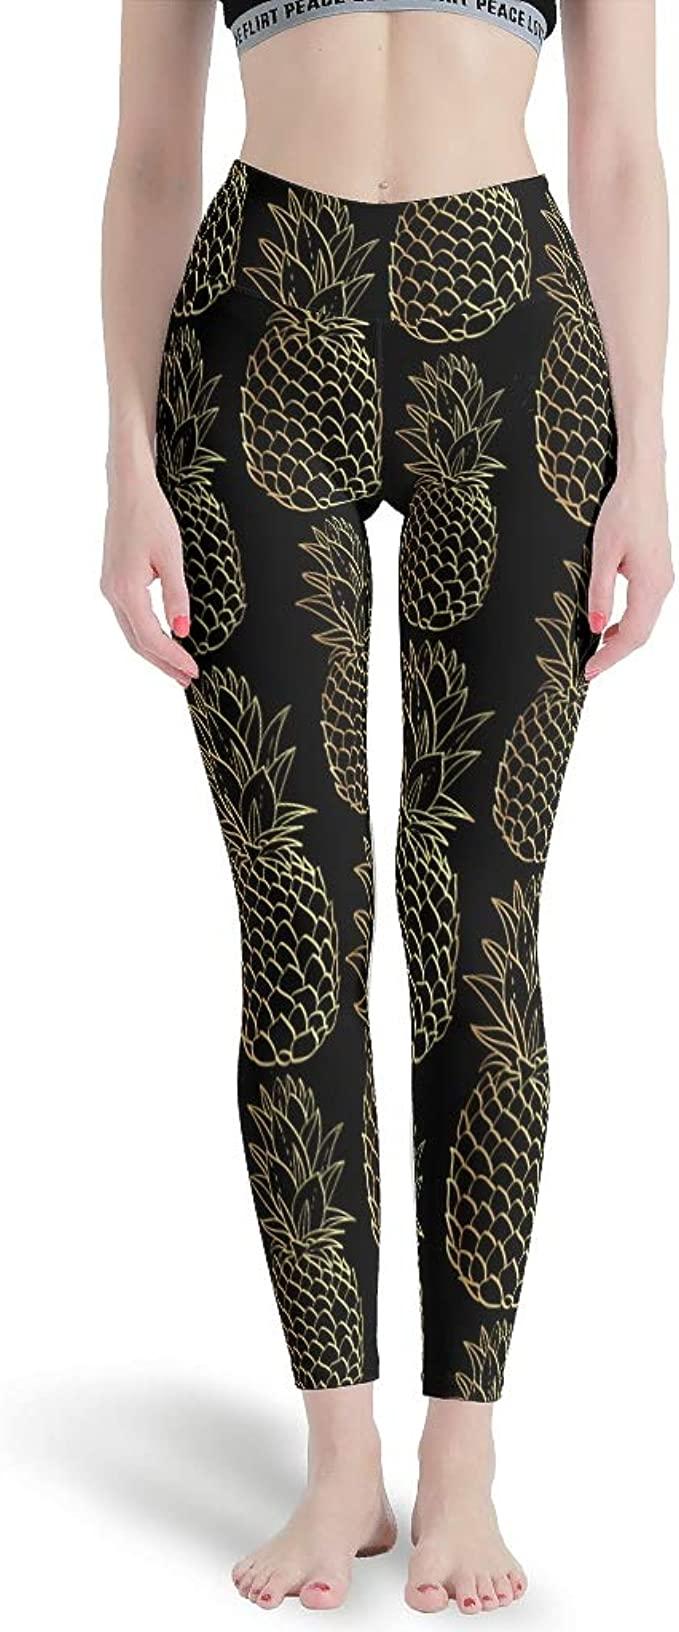 Women/'s Pineapple Printed Leggings Buttery Soft Peach Skin One Size 0-12